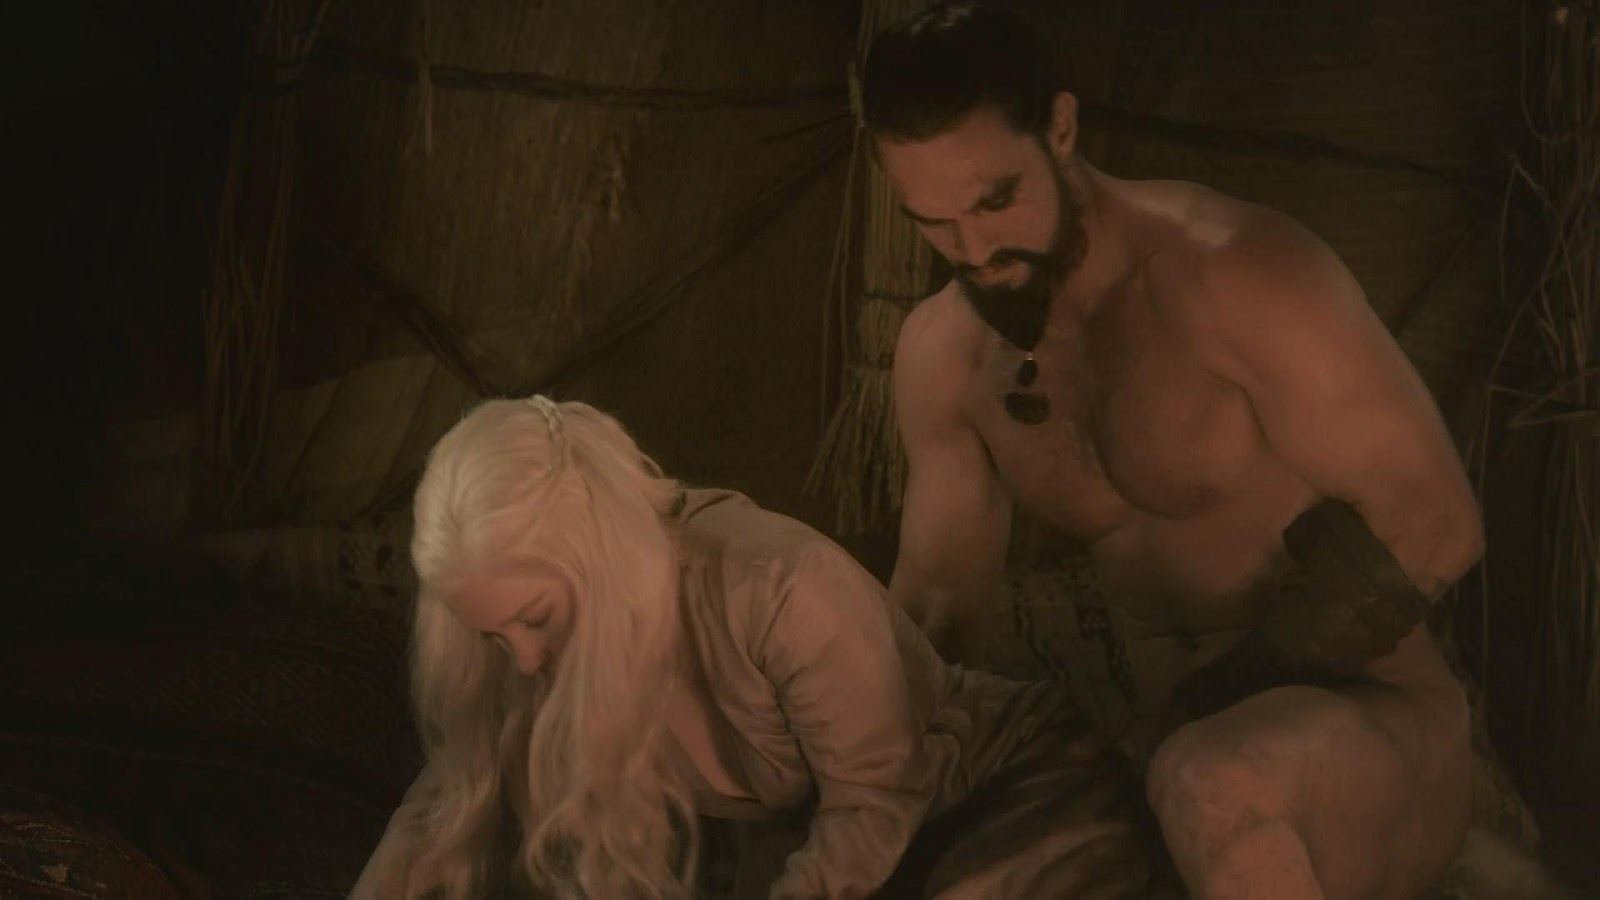 For the Jason momoa game of thrones nude are